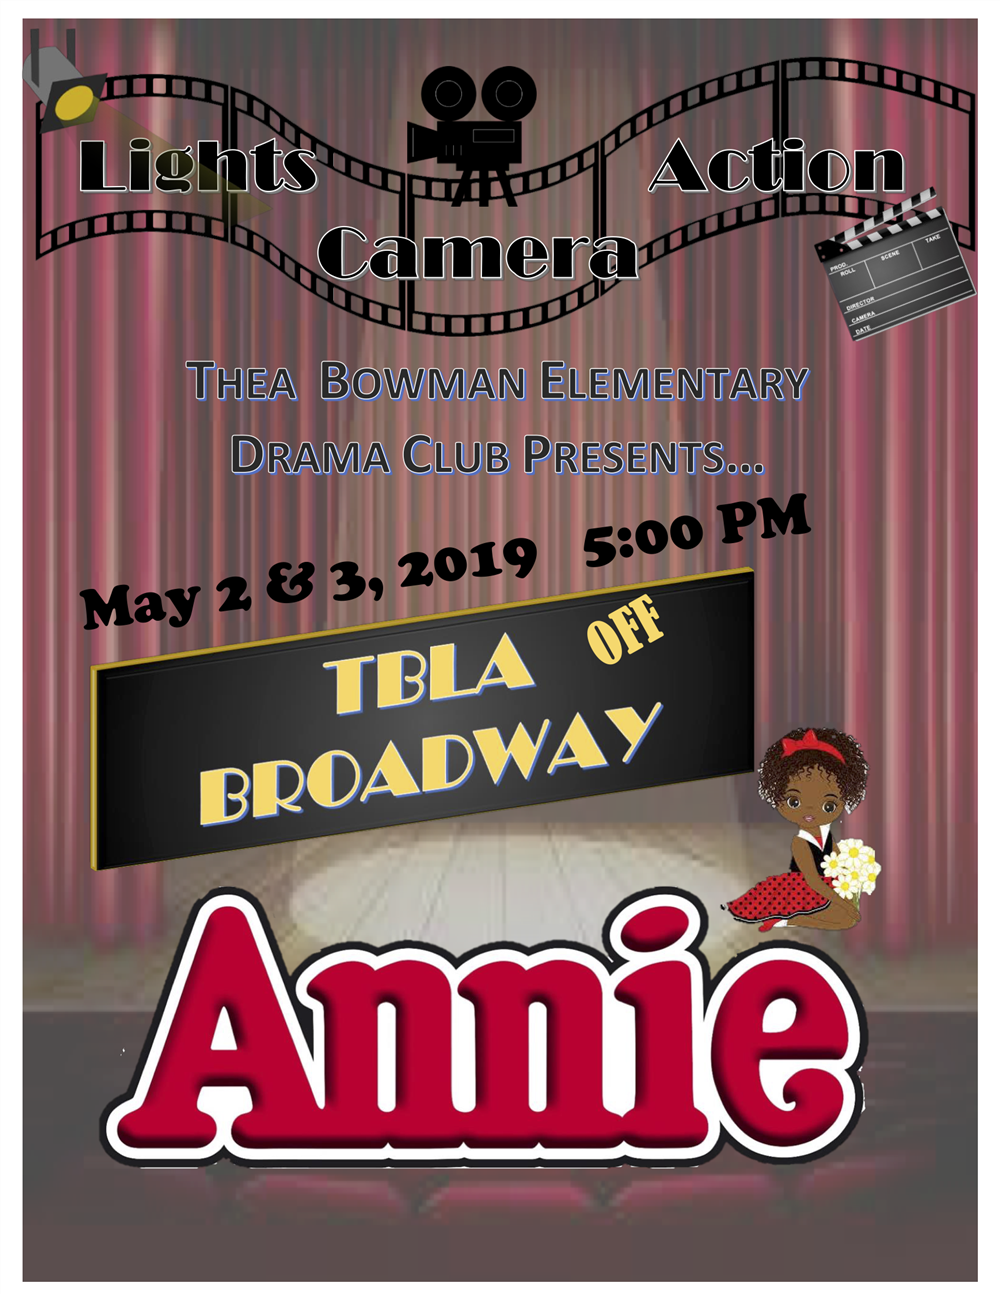 Join the Thea Bowman Elementary Drama Club